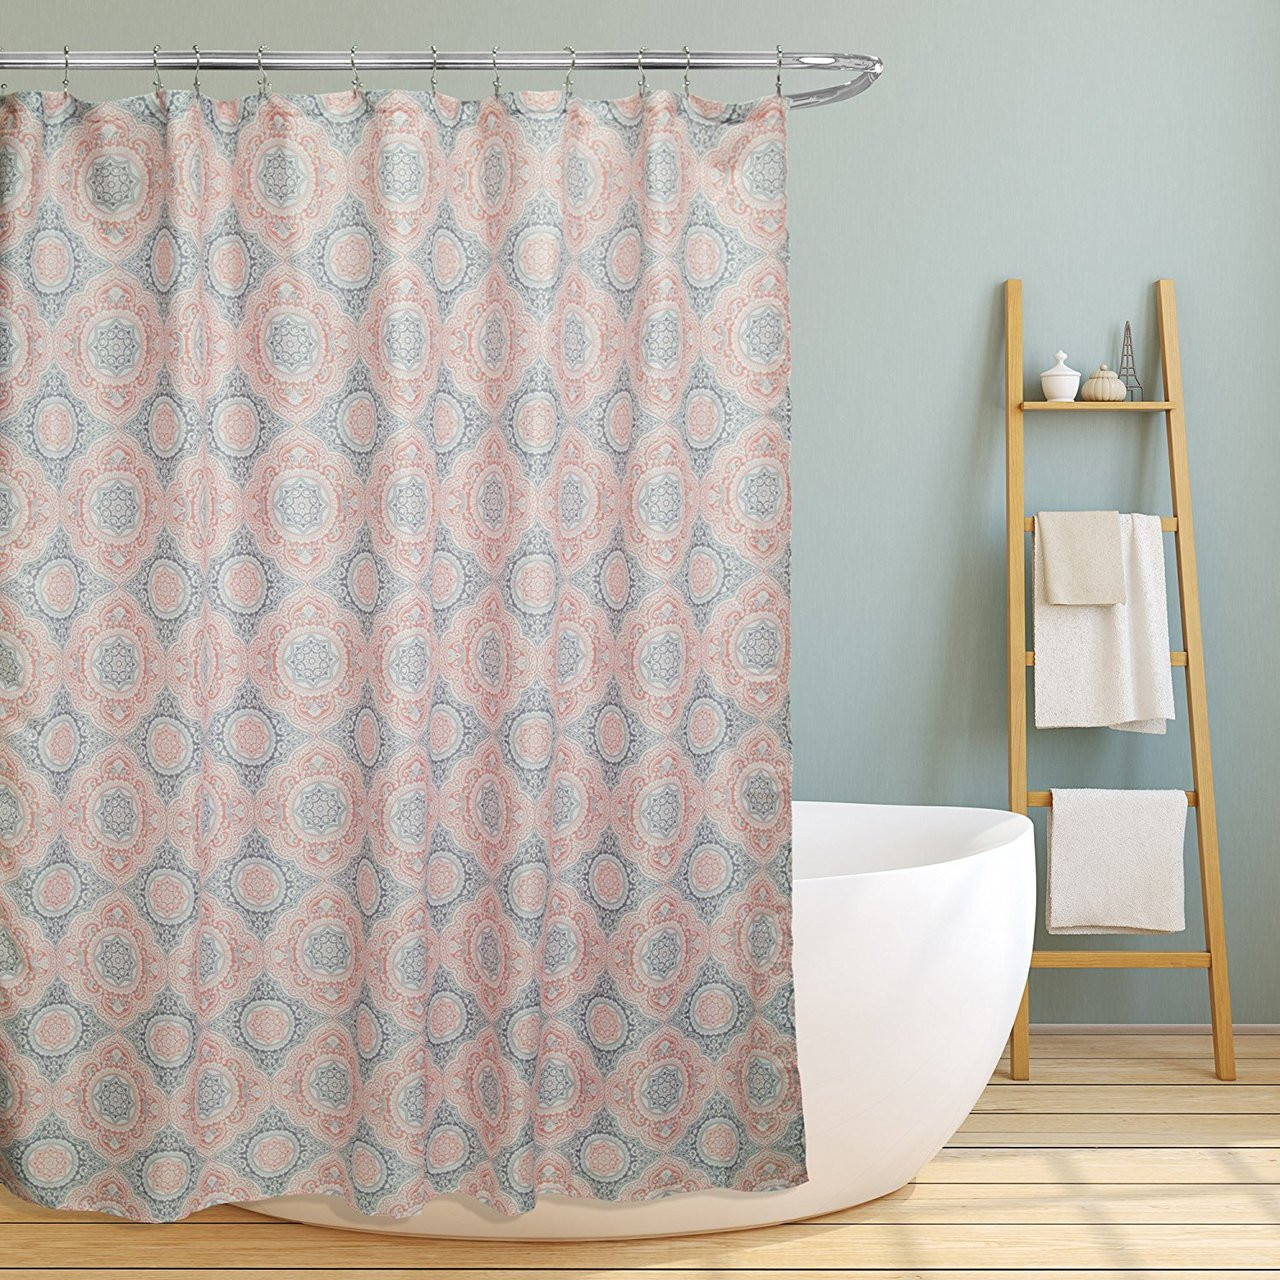 Bunnings Bath Paint Linen Store Fabric Canvas Shower Curtain 70 Quotx70 Quot Casey